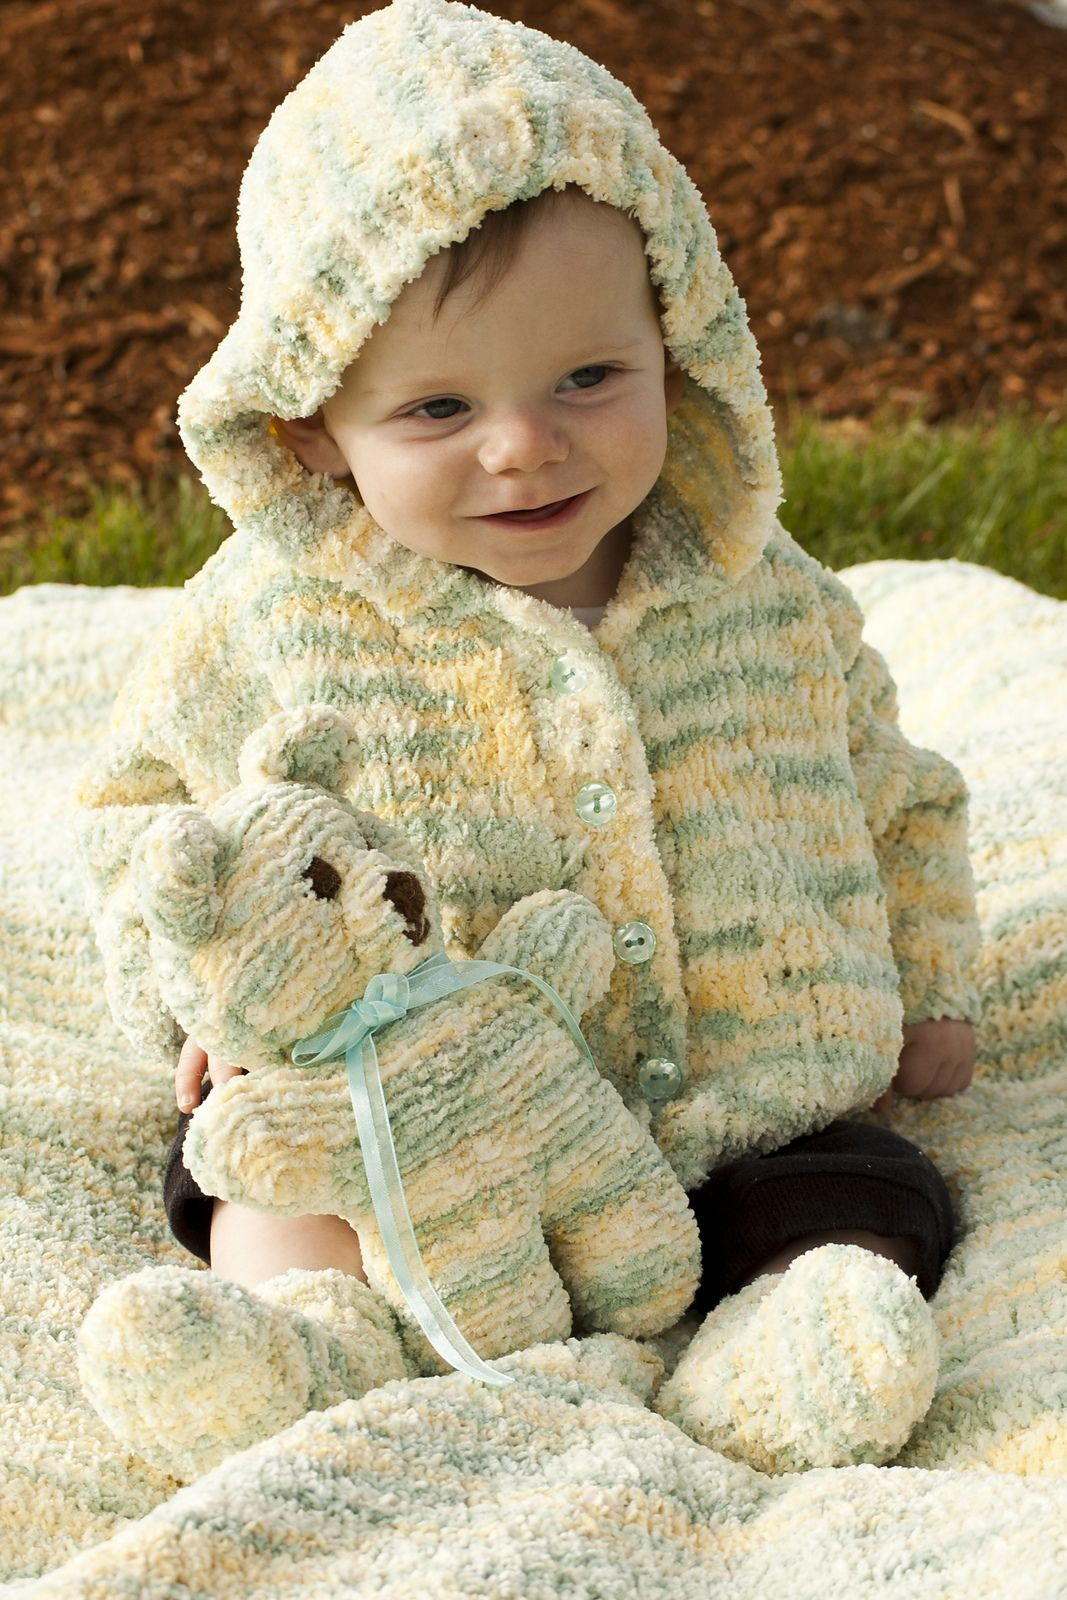 Free knitting pattern for winter warmer baby set with sweater toy free knitting pattern for winter warmer baby set with sweater toy socks and bankloansurffo Gallery